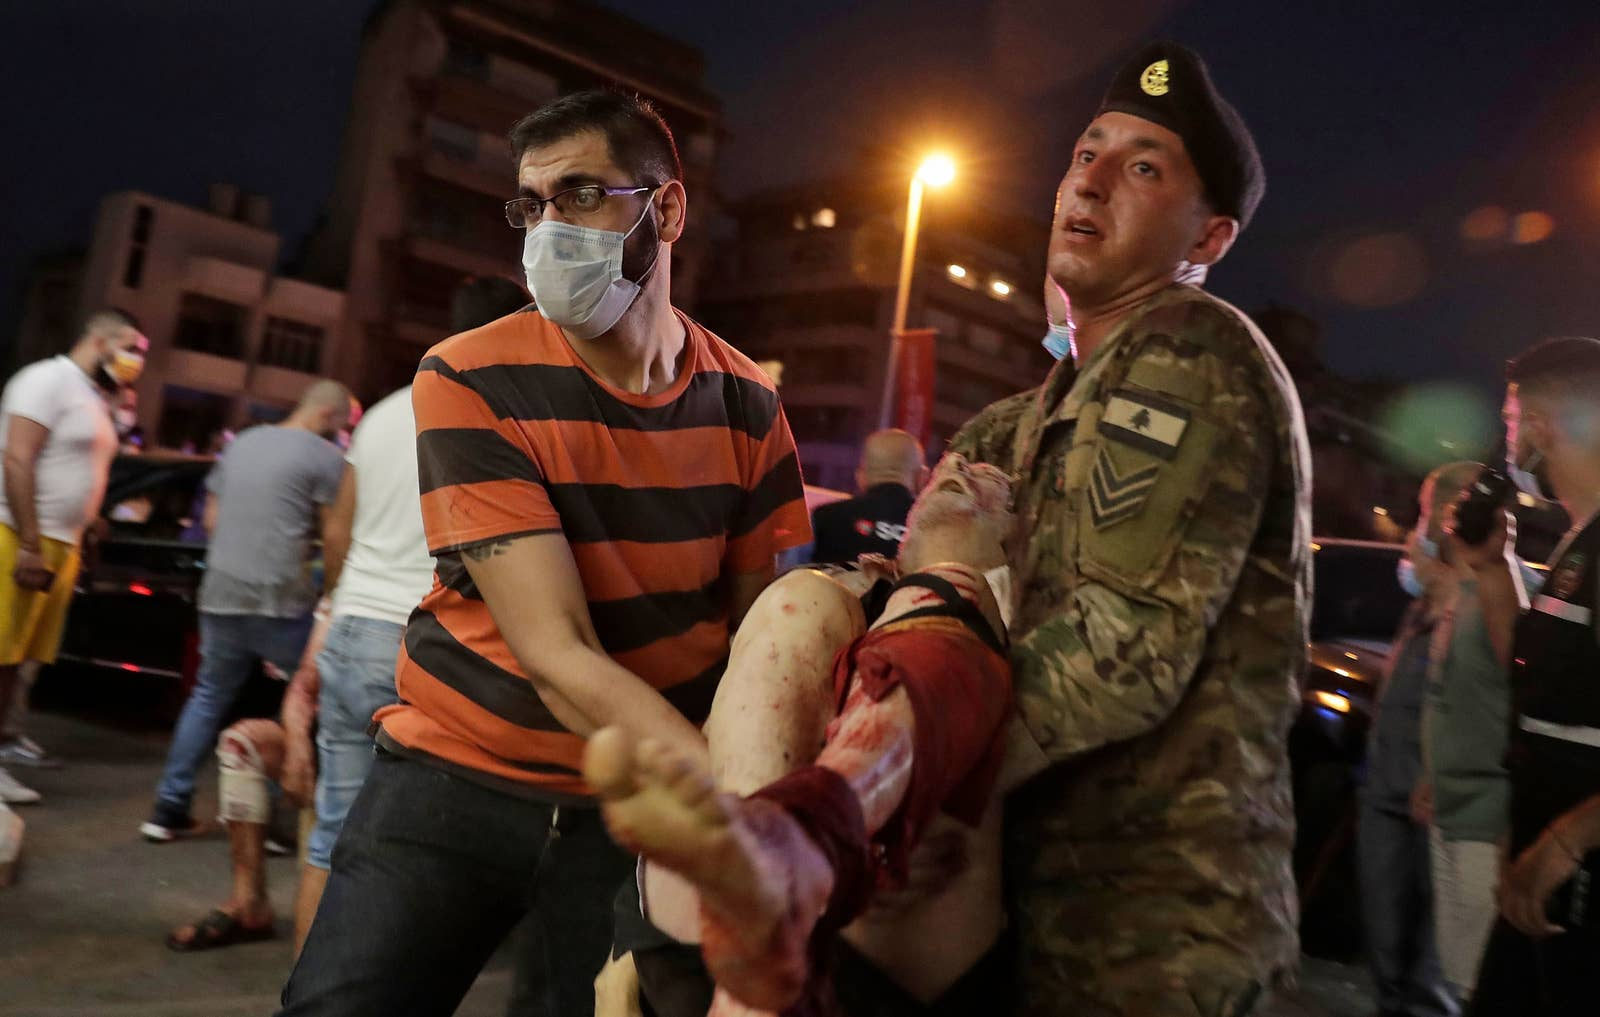 A man in a striped shirt and a mask carries a person with a leg injury down a crowded street with the help of a Lebanese soldier in uniform